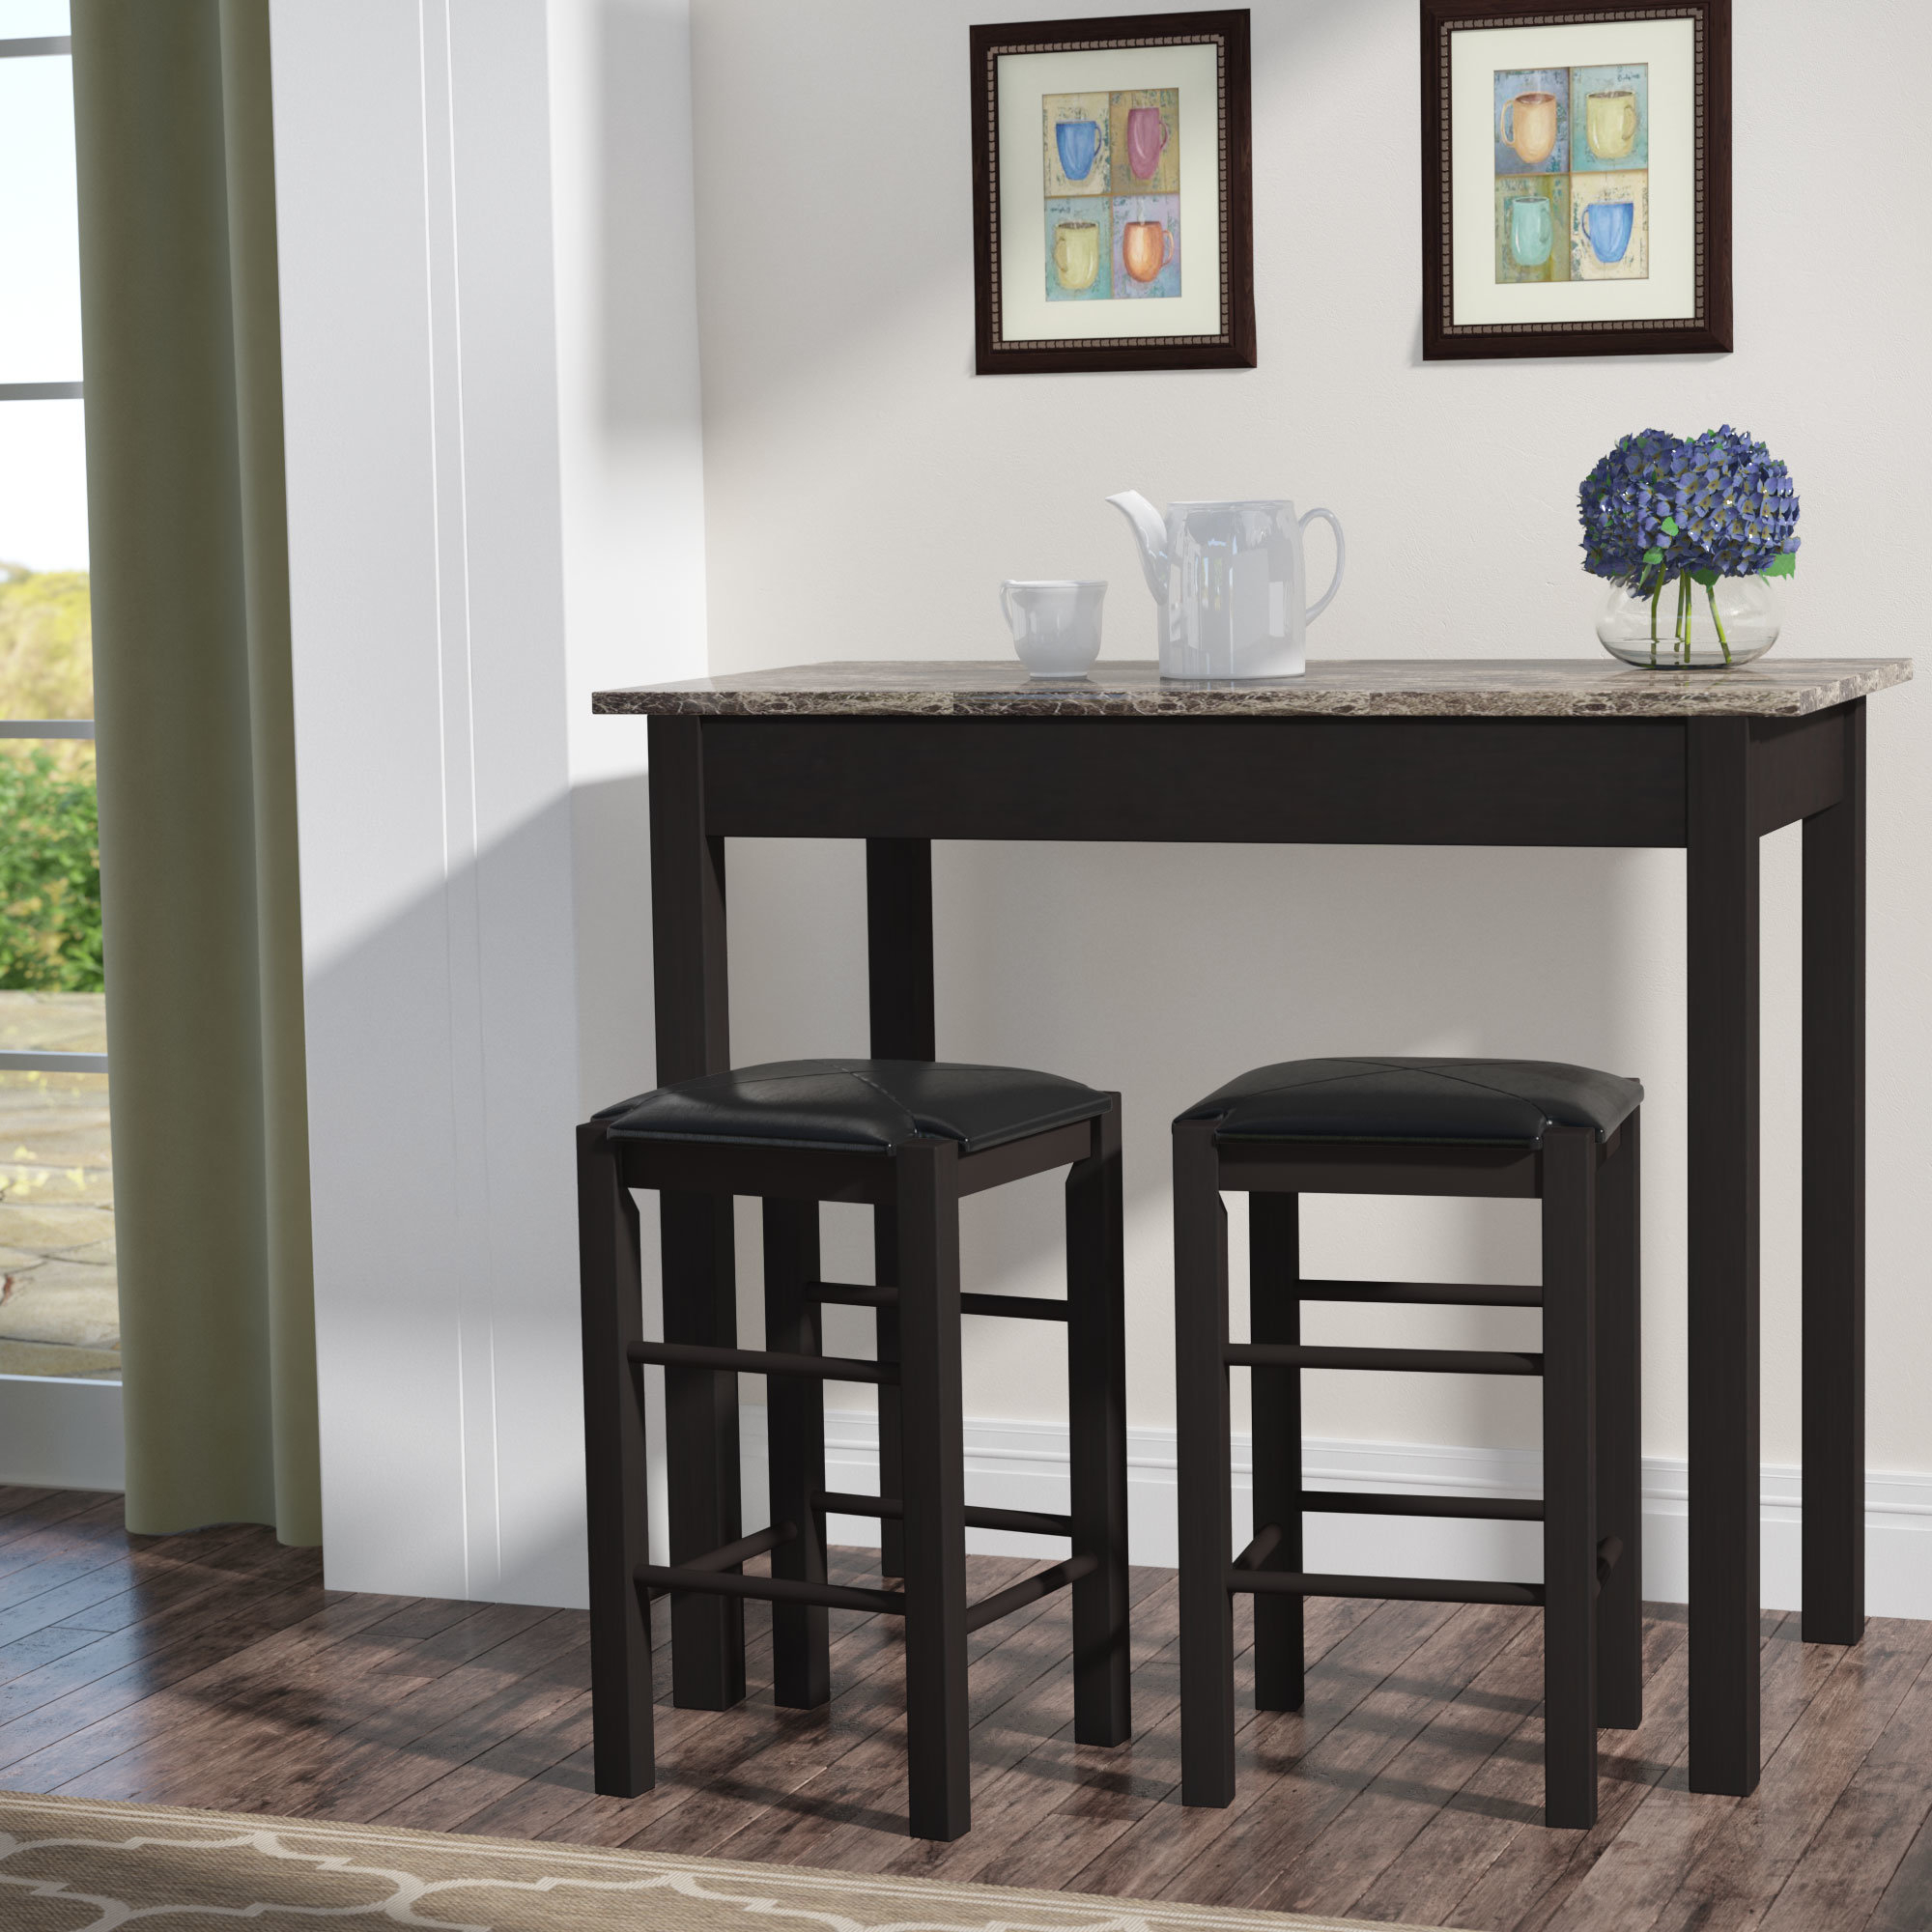 Berrios 3 Piece Counter Height Dining Sets Inside 2020 Winston Porter Sheetz 3 Piece Counter Height Dining Set & Reviews (View 2 of 25)